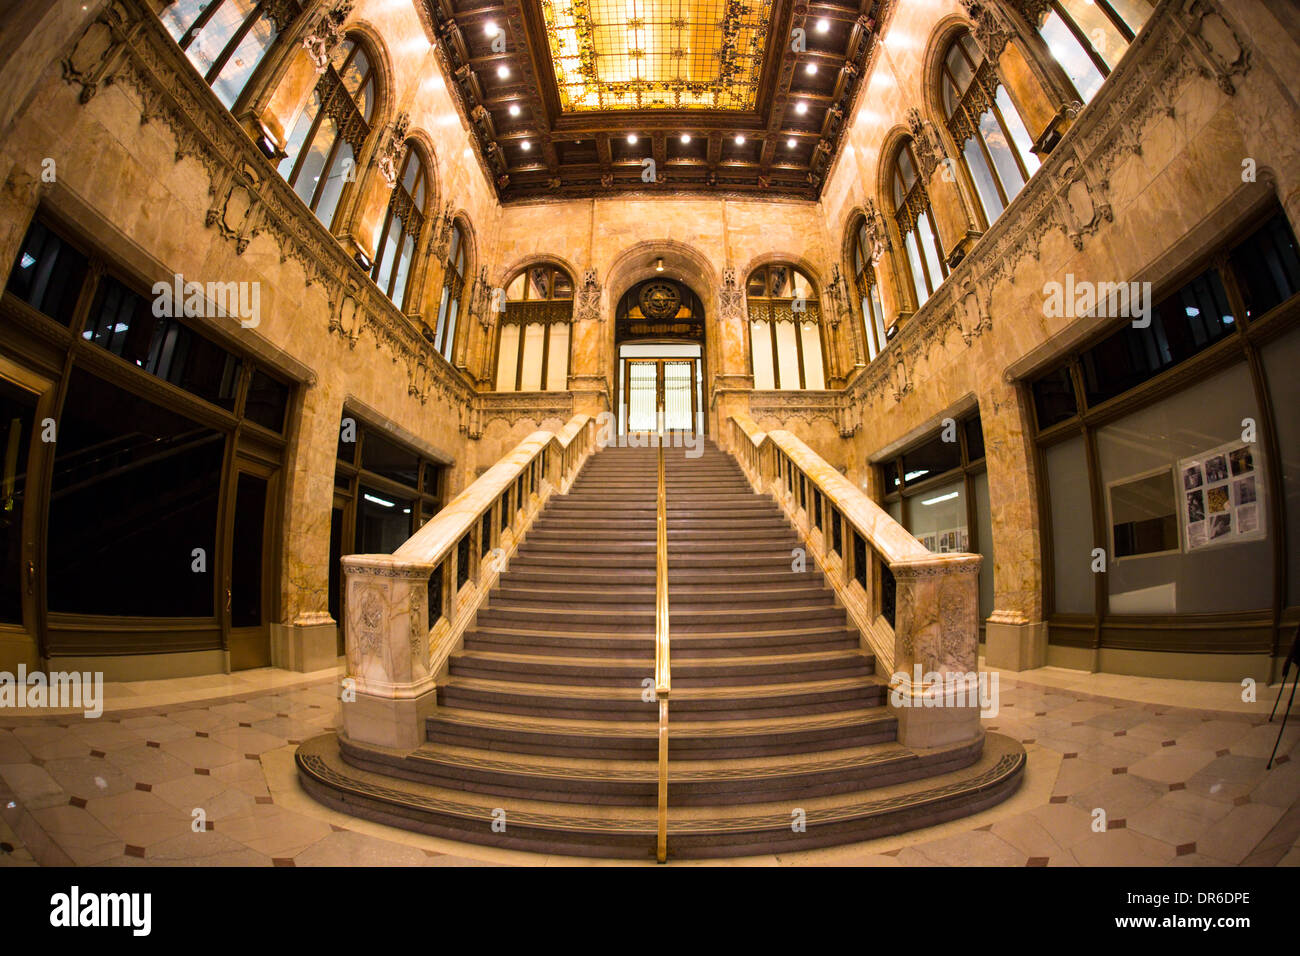 Beautiful lobby interior with staircase in historic Chrysler Building in New York City seen on November 9 2013 - Stock Image